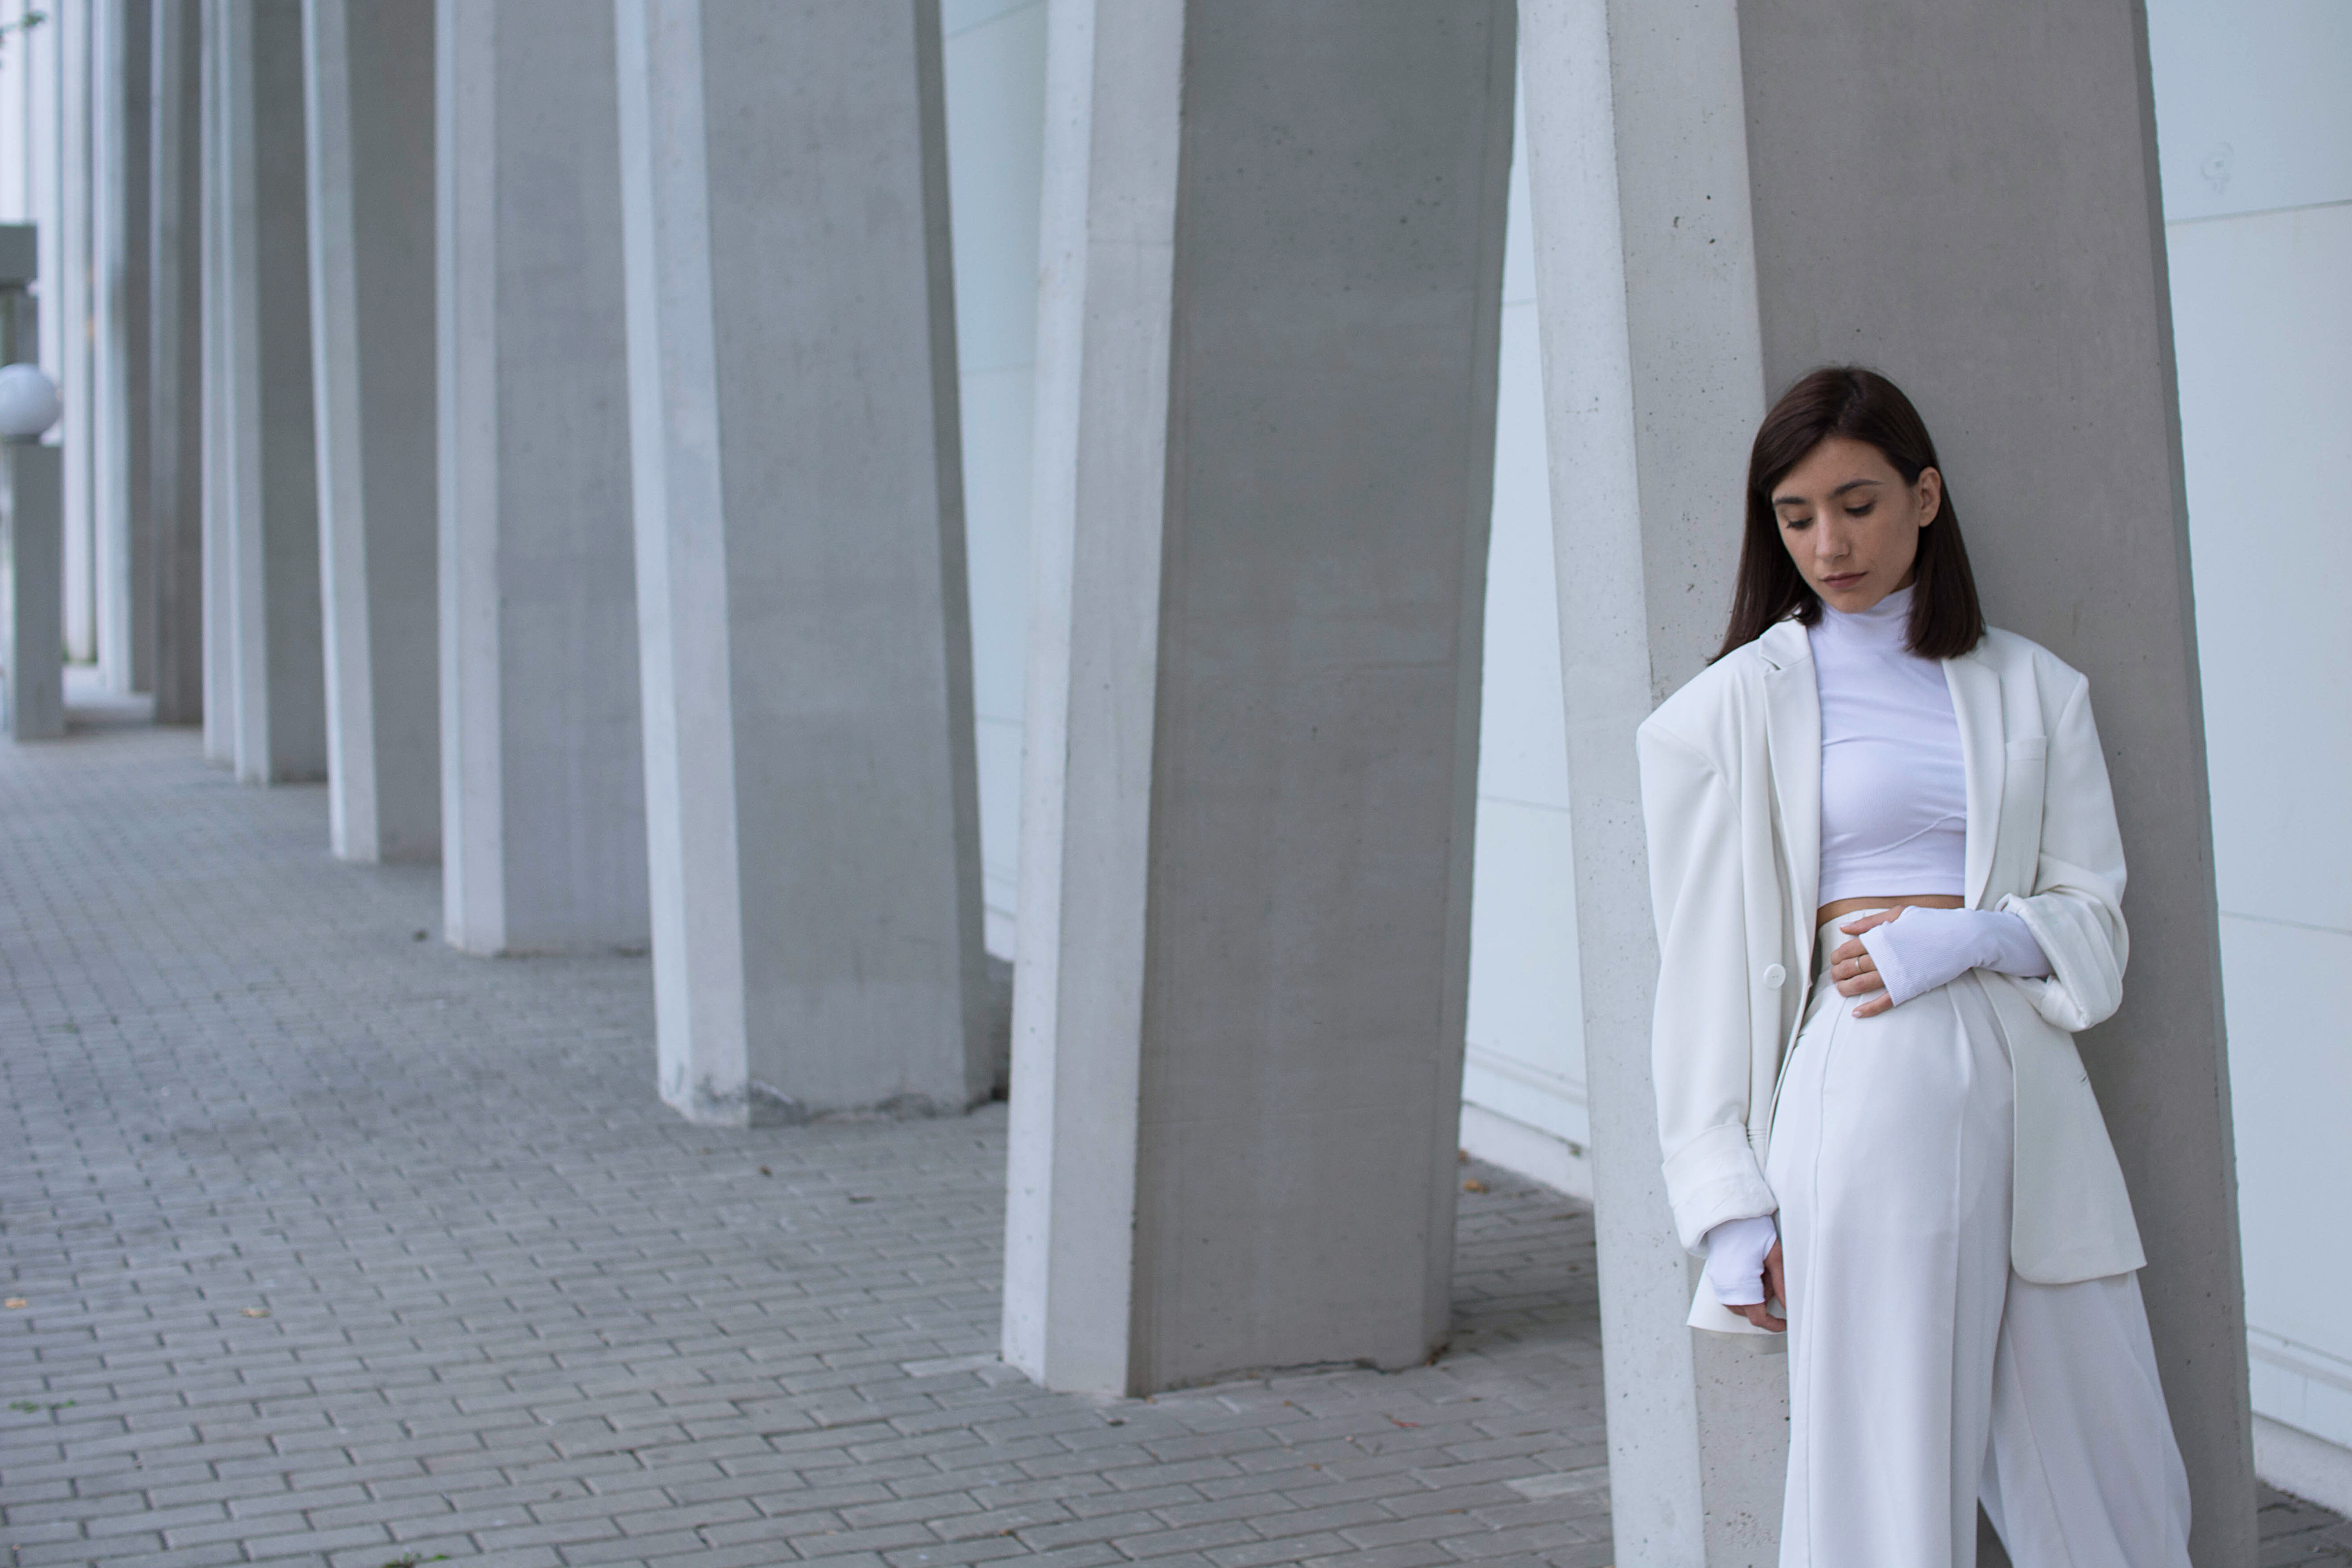 Contemporary brand with minimalist aesthetic rooted in modernist art and architecture